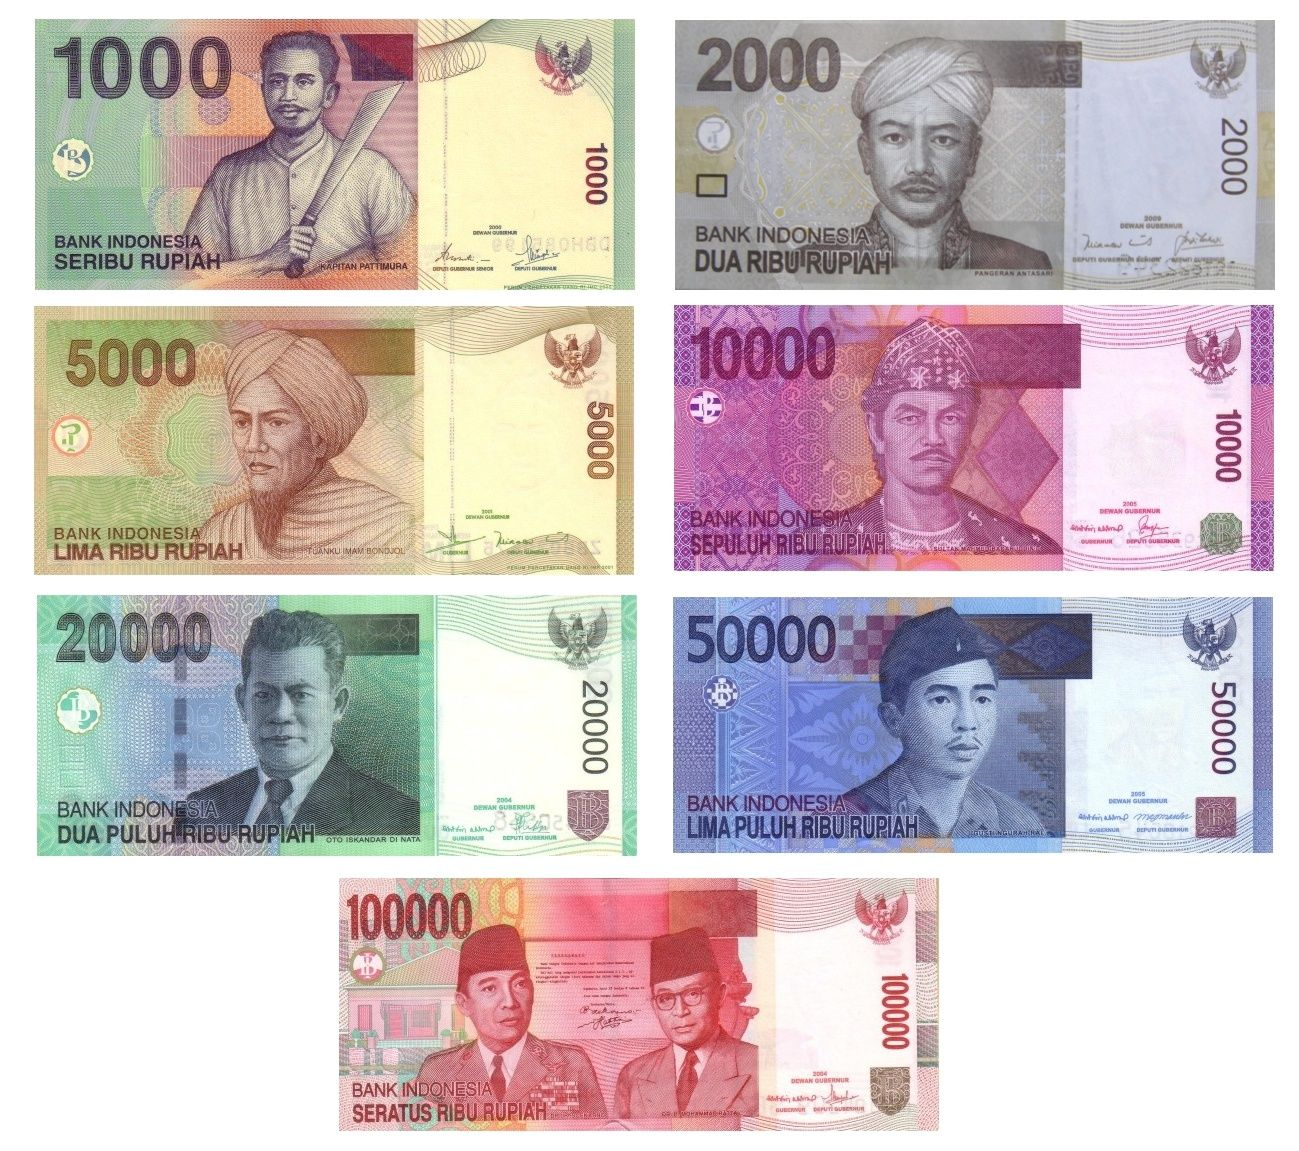 Indonesia Currency Is Rupiah To Calculate As U S Dollar 8 10 5